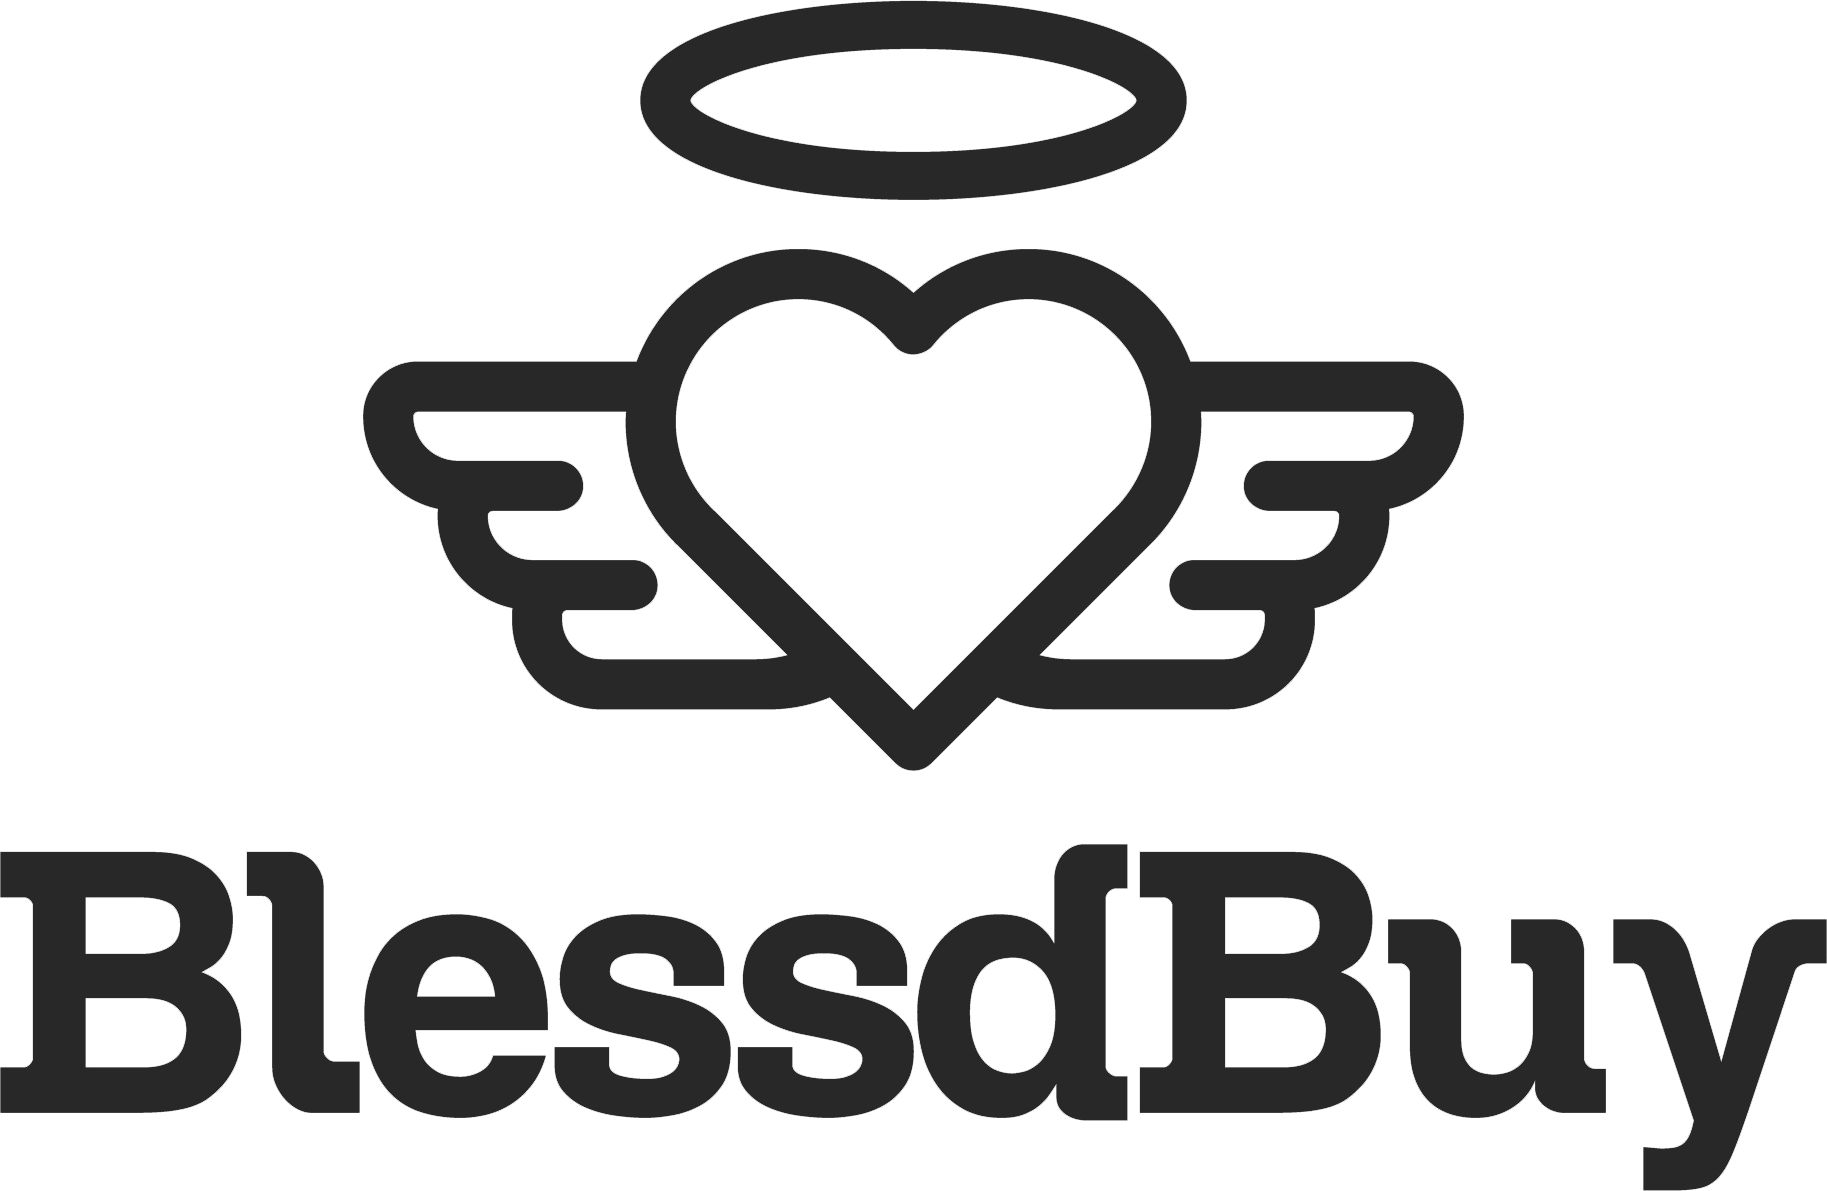 BlessdBuy® | Marketplace & Ecosystem for Non-Profit Made Products